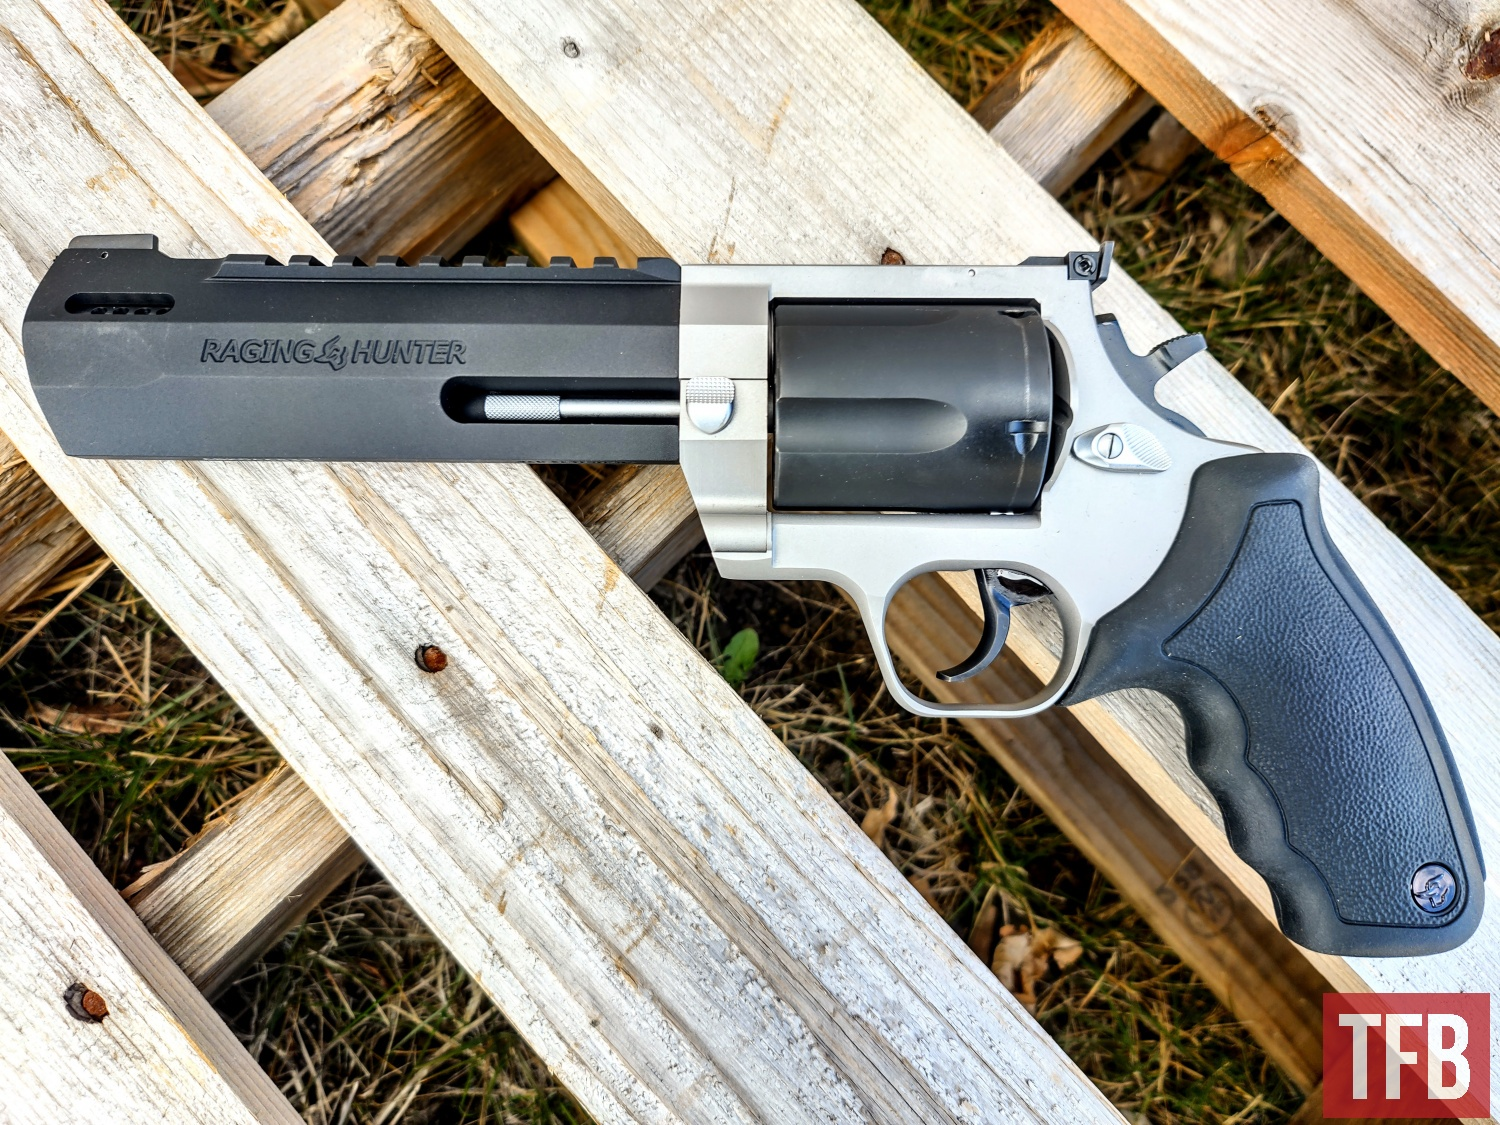 Wheelgun Wednesday: First Look at the Taurus Raging Hunter 460